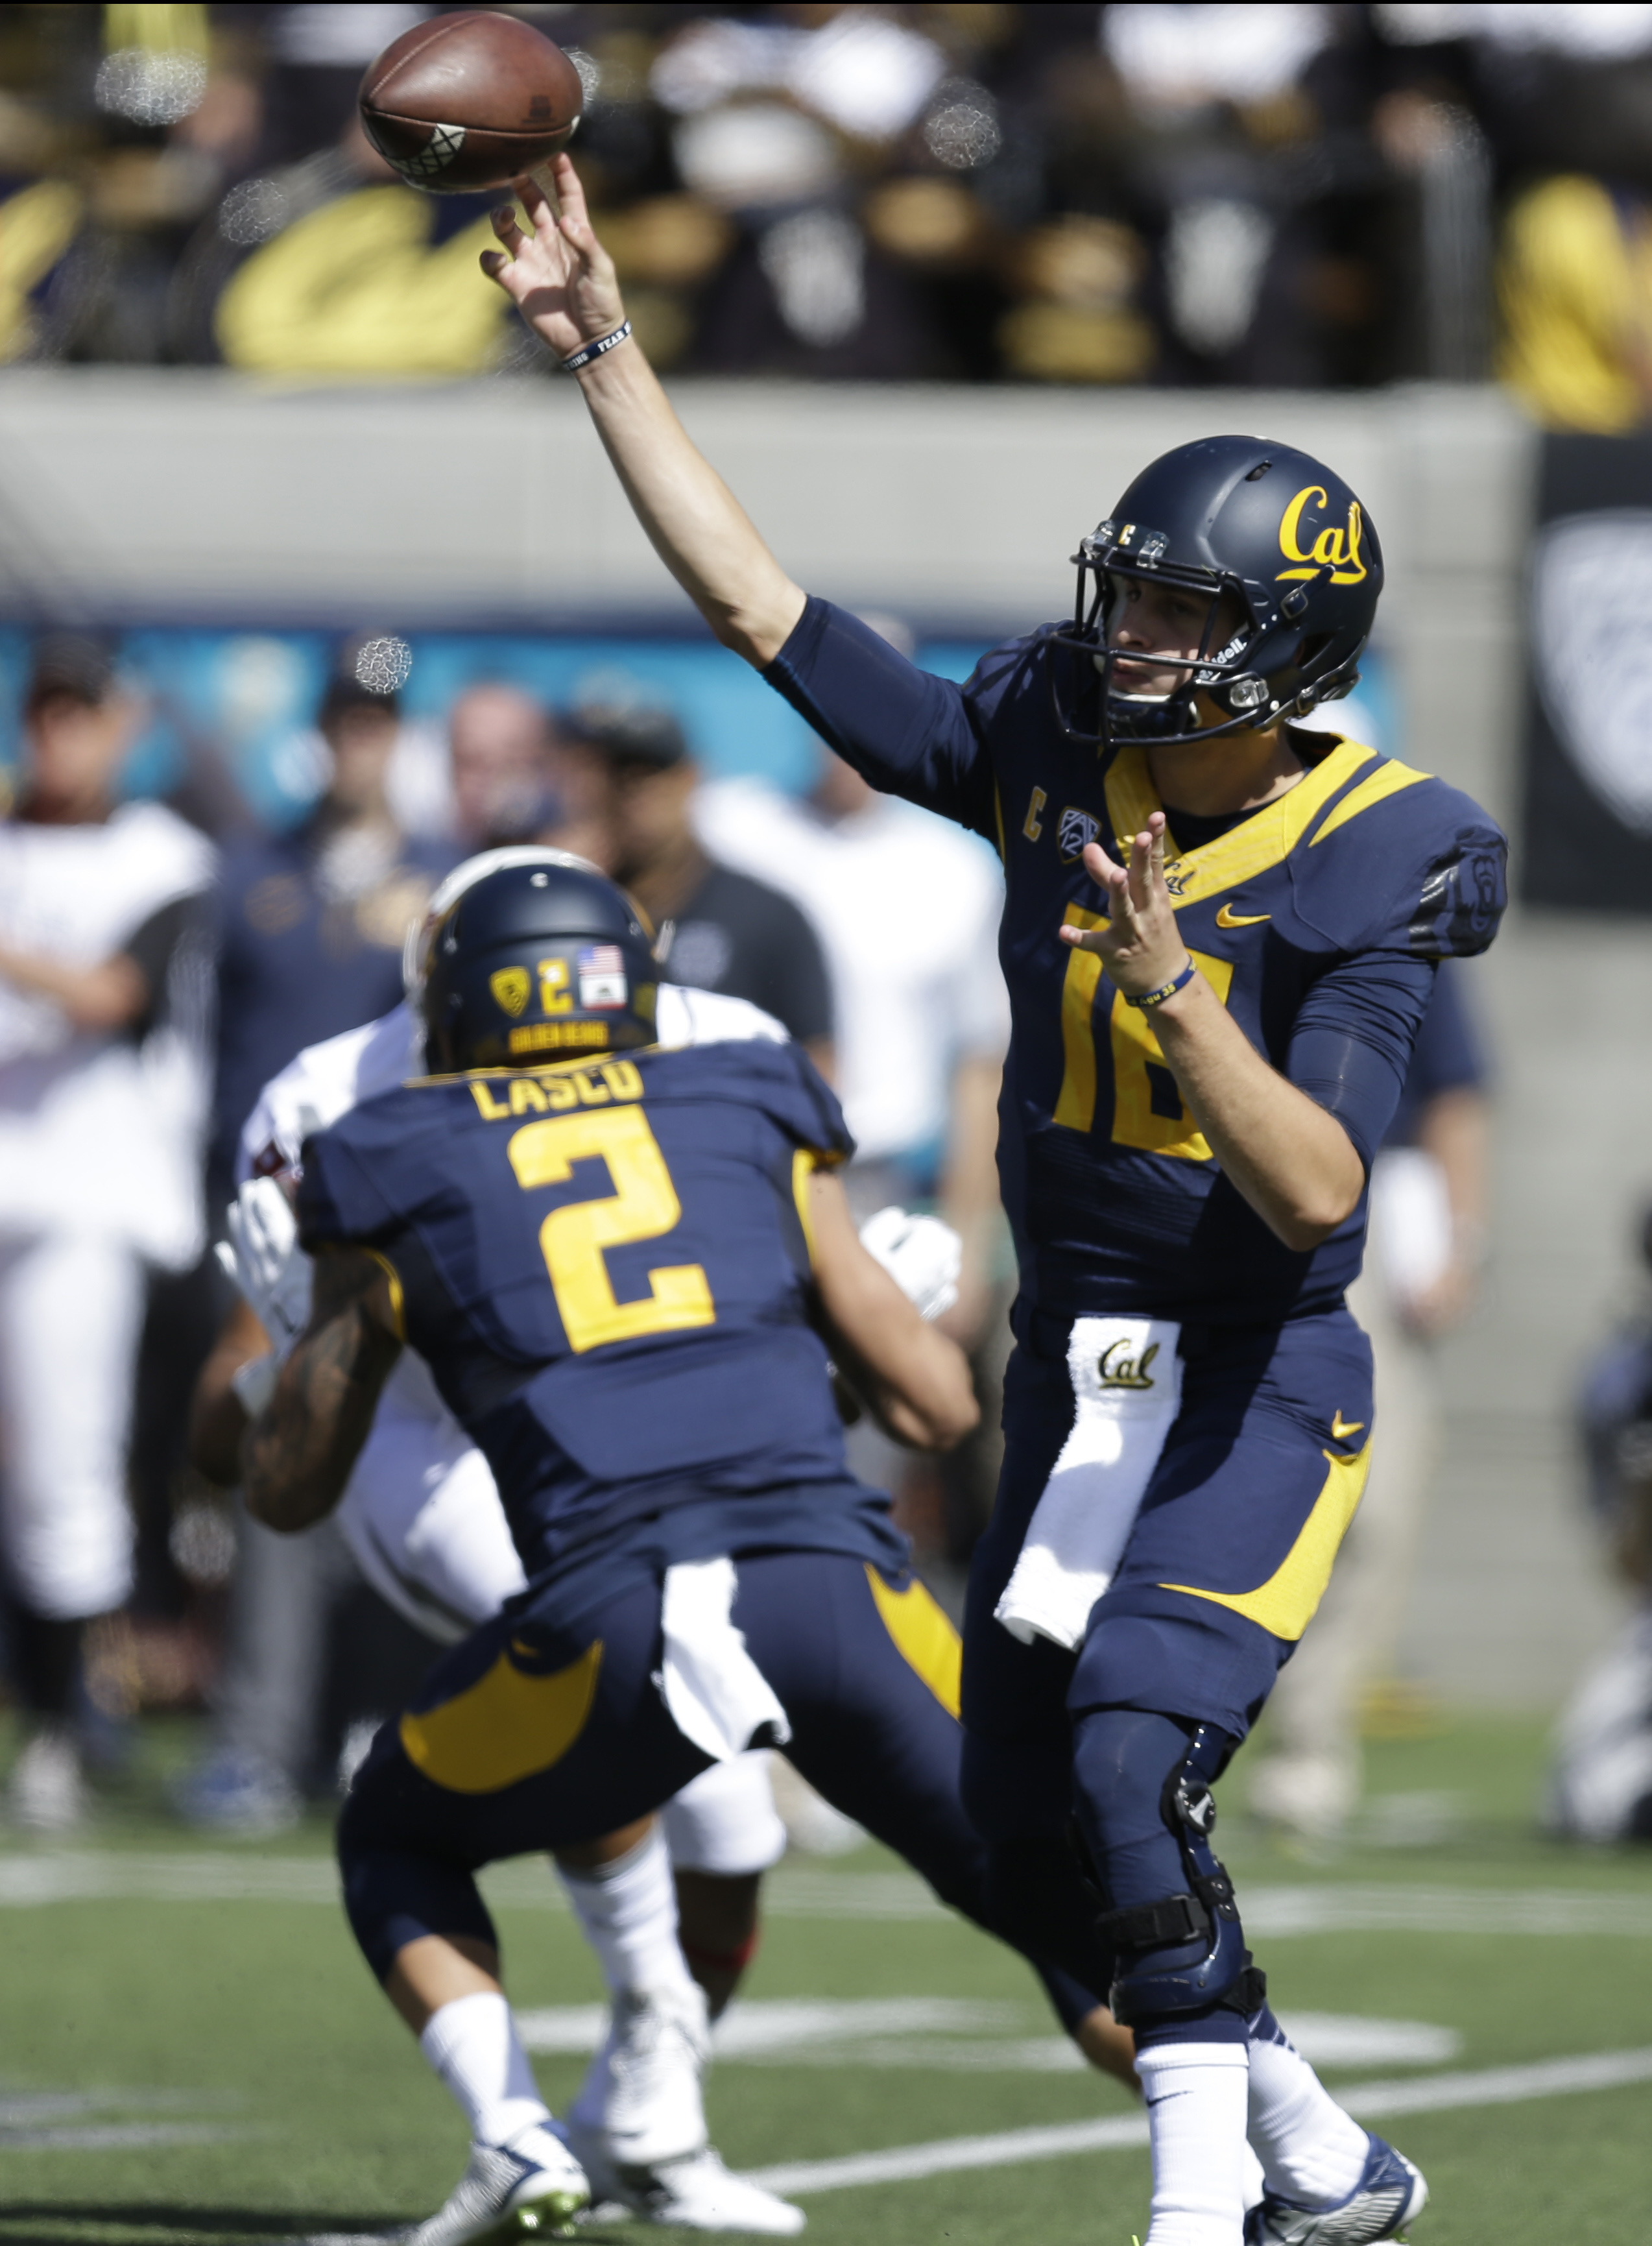 California quarterback Jared Goff passes against Washington State during the first half of an NCAA college football game Saturday, Oct. 3, 2015, in Berkeley, Calif. (AP Photo/Ben Margot)